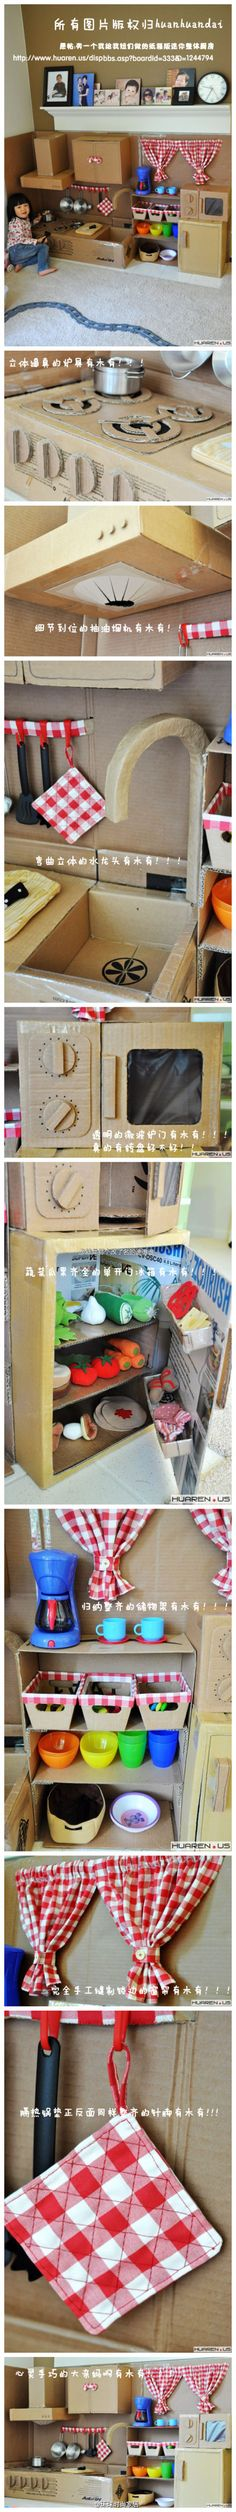 Cardboard play kitchen -- I love the stove and pop of color in the fridge!